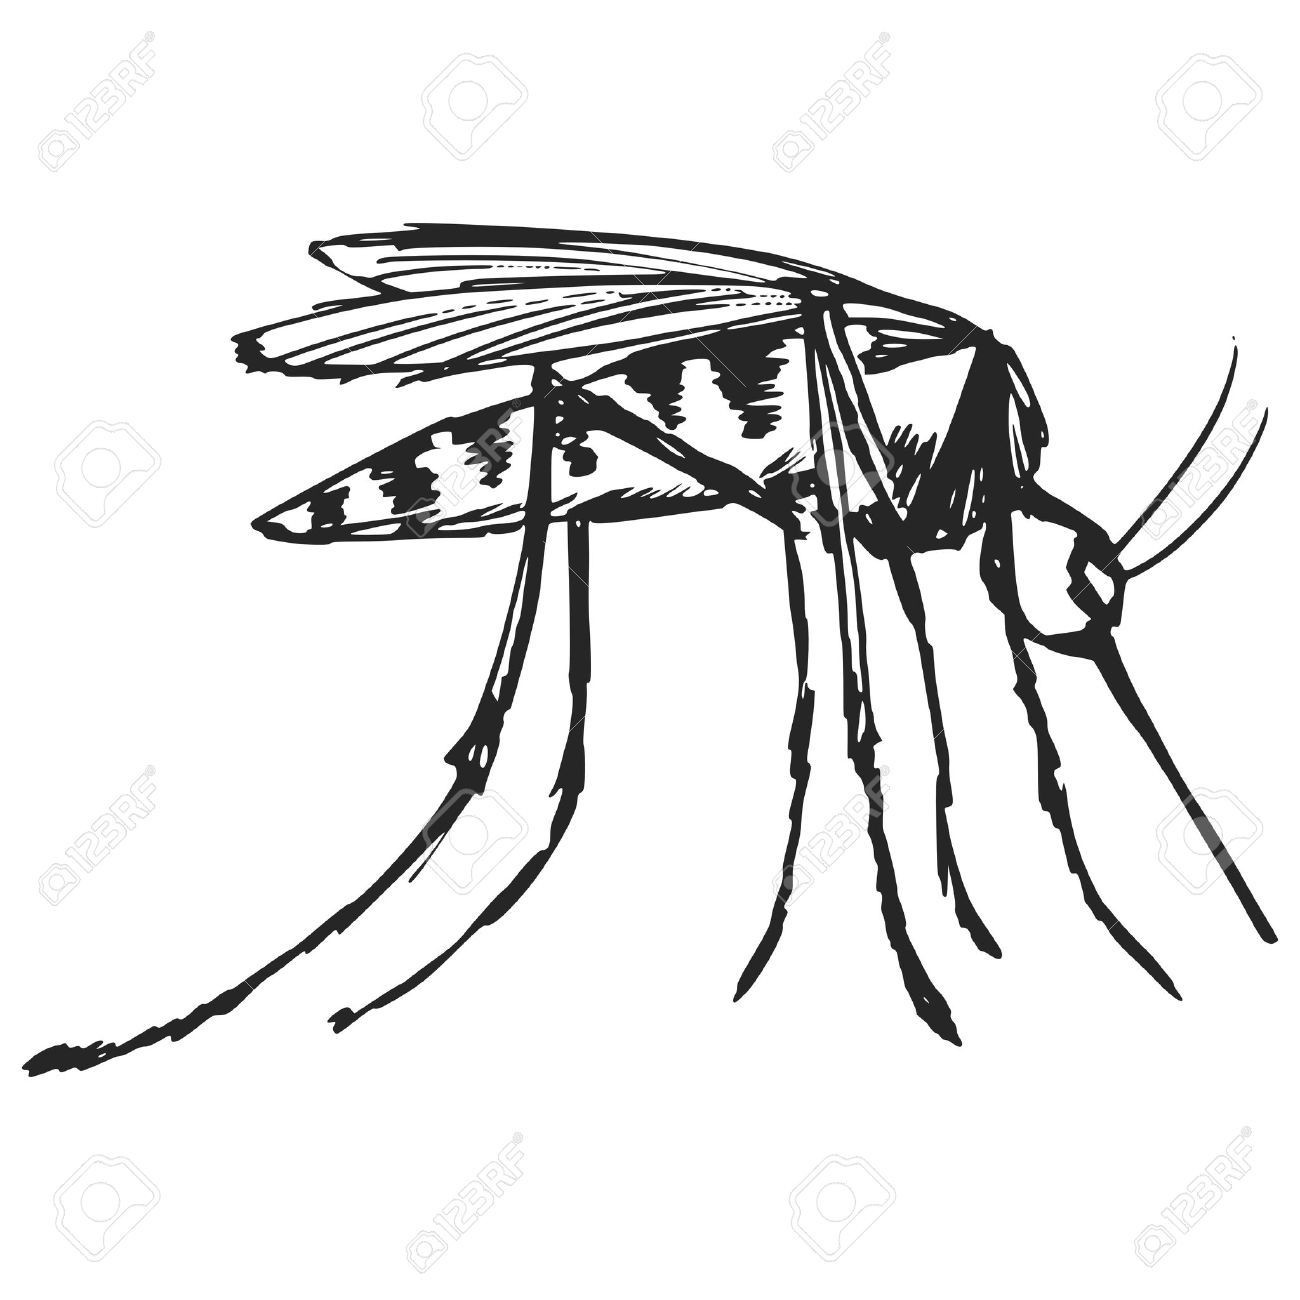 Hand Drawn Sketch Cartoon Illustration Of Mosquito Cartoon Illustration How To Draw Hands Mosquito Drawing